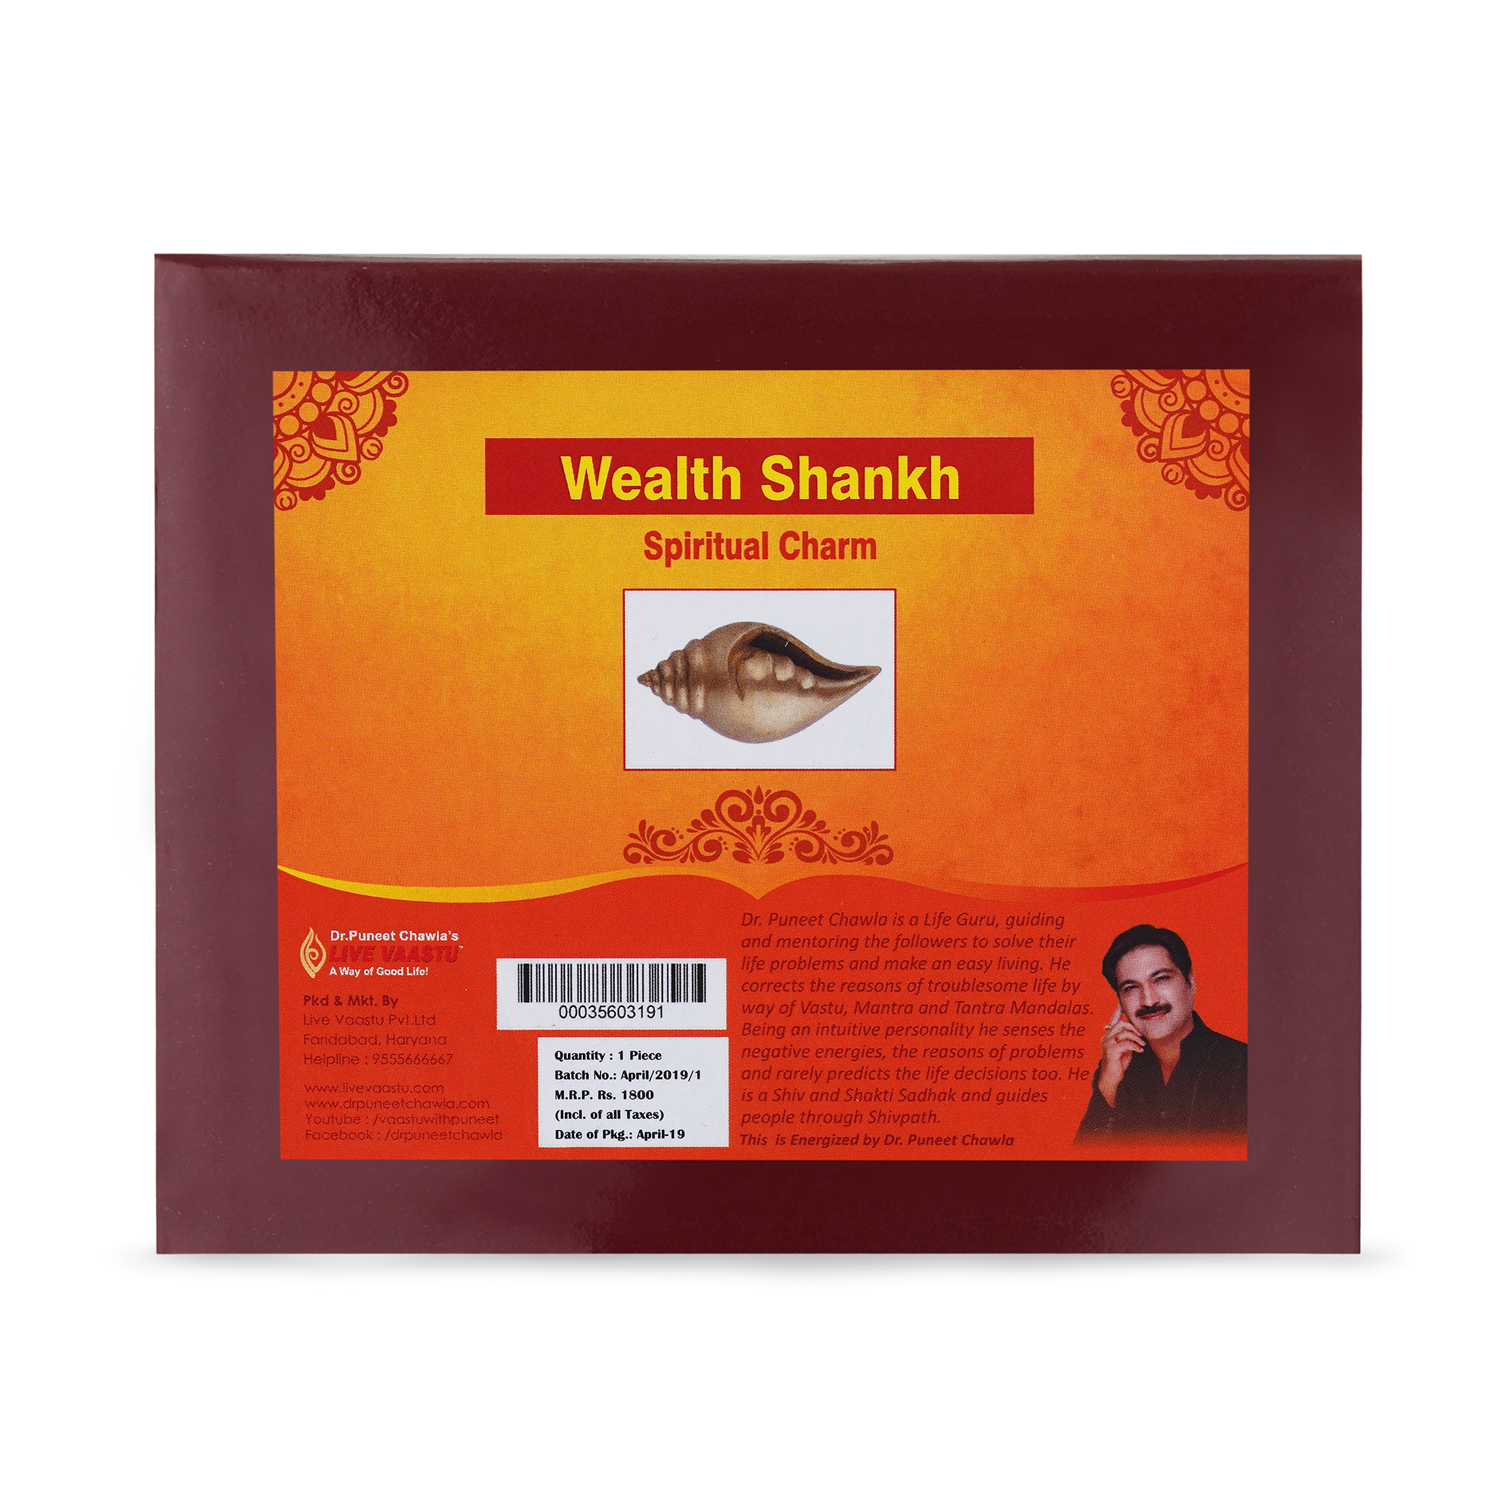 Wealth Shankh